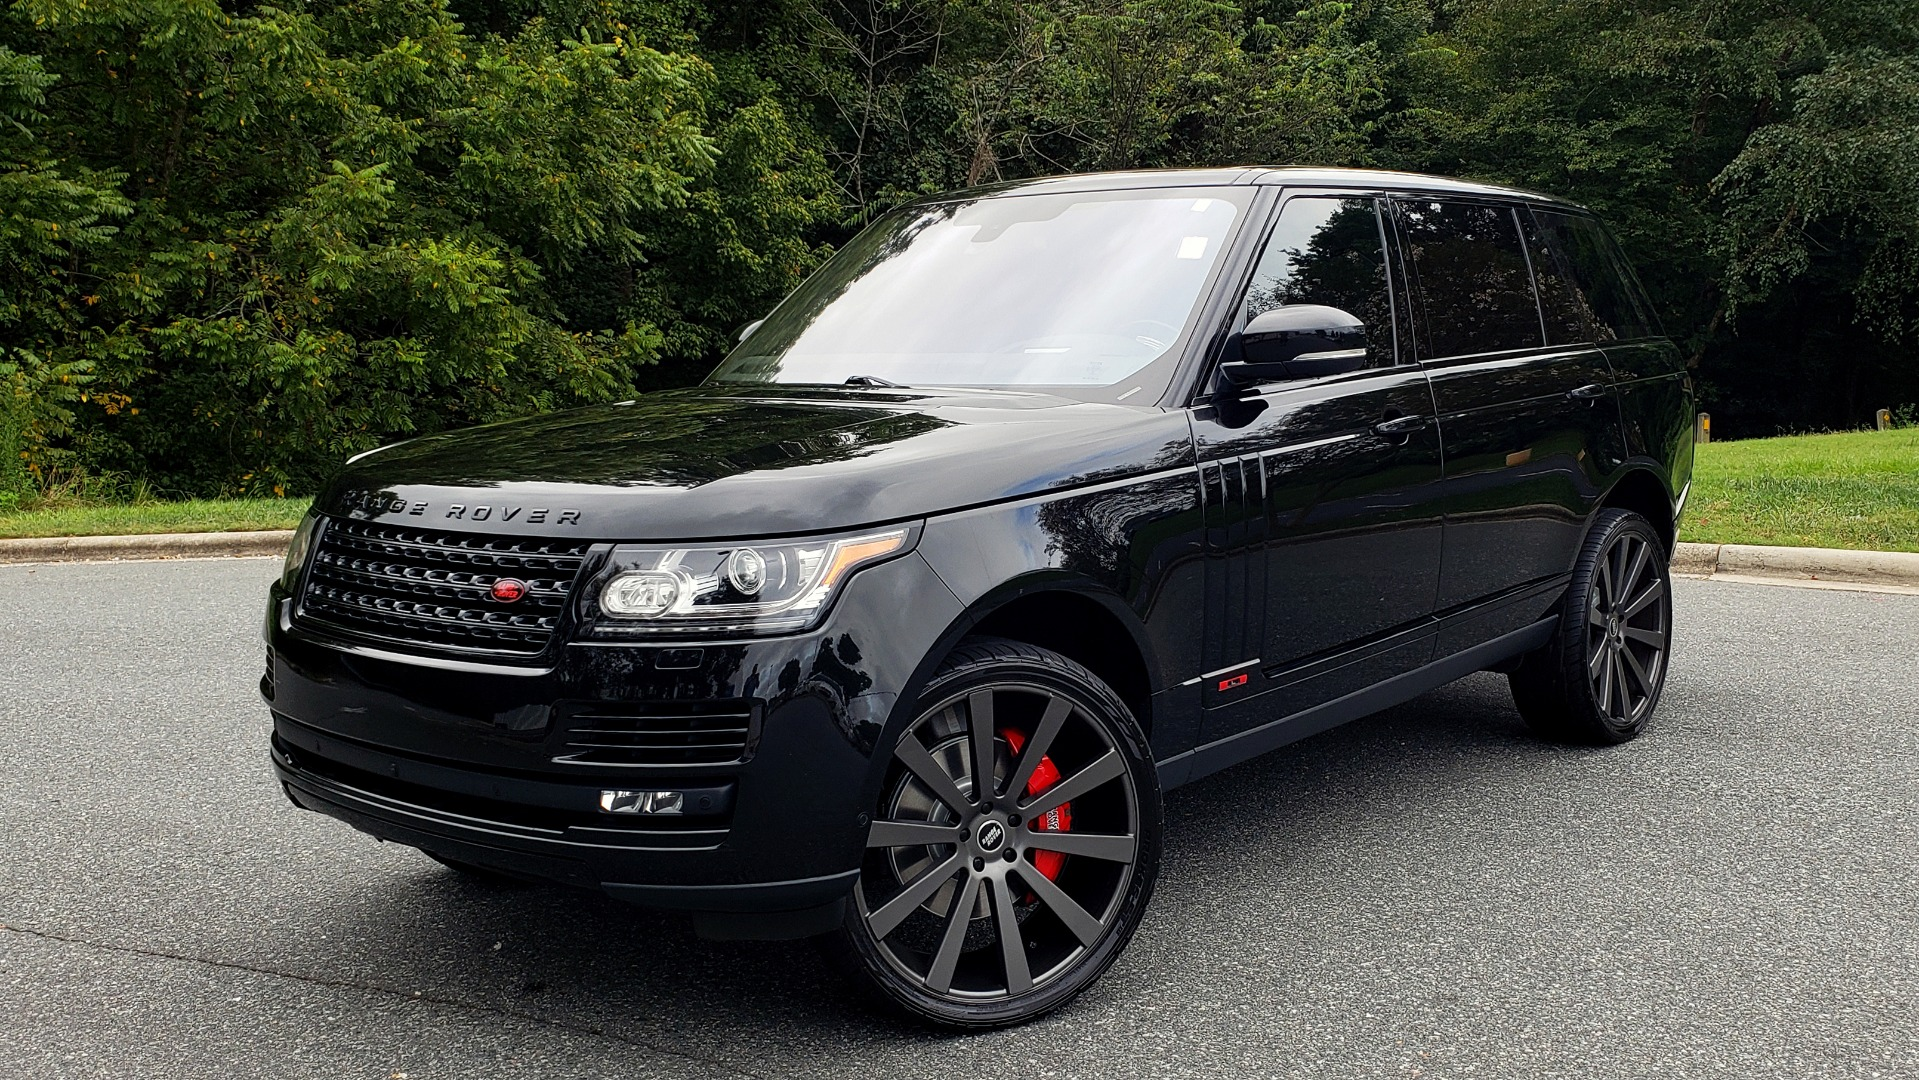 Used 2016 Land Rover RANGE ROVER AUTOBIOGRAPHY / SC-V8 / LWB / PANO-ROOF / NAV / MERIDIAN / ENT / REARVIEW for sale $71,495 at Formula Imports in Charlotte NC 28227 1